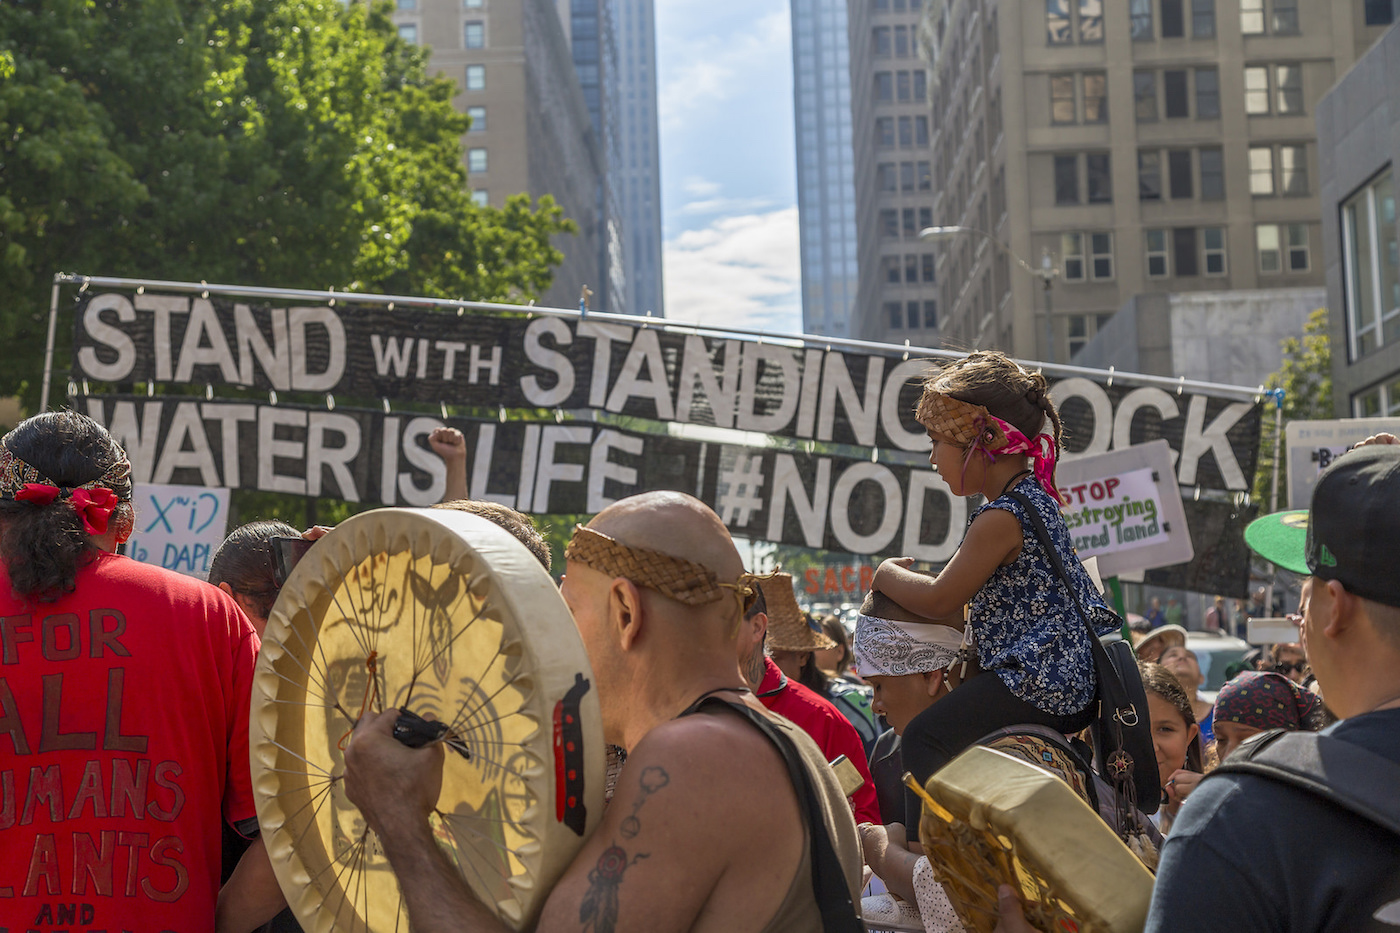 Stand with Standing Rock march this month in Seattle (photo by John Duffy/Flickr)